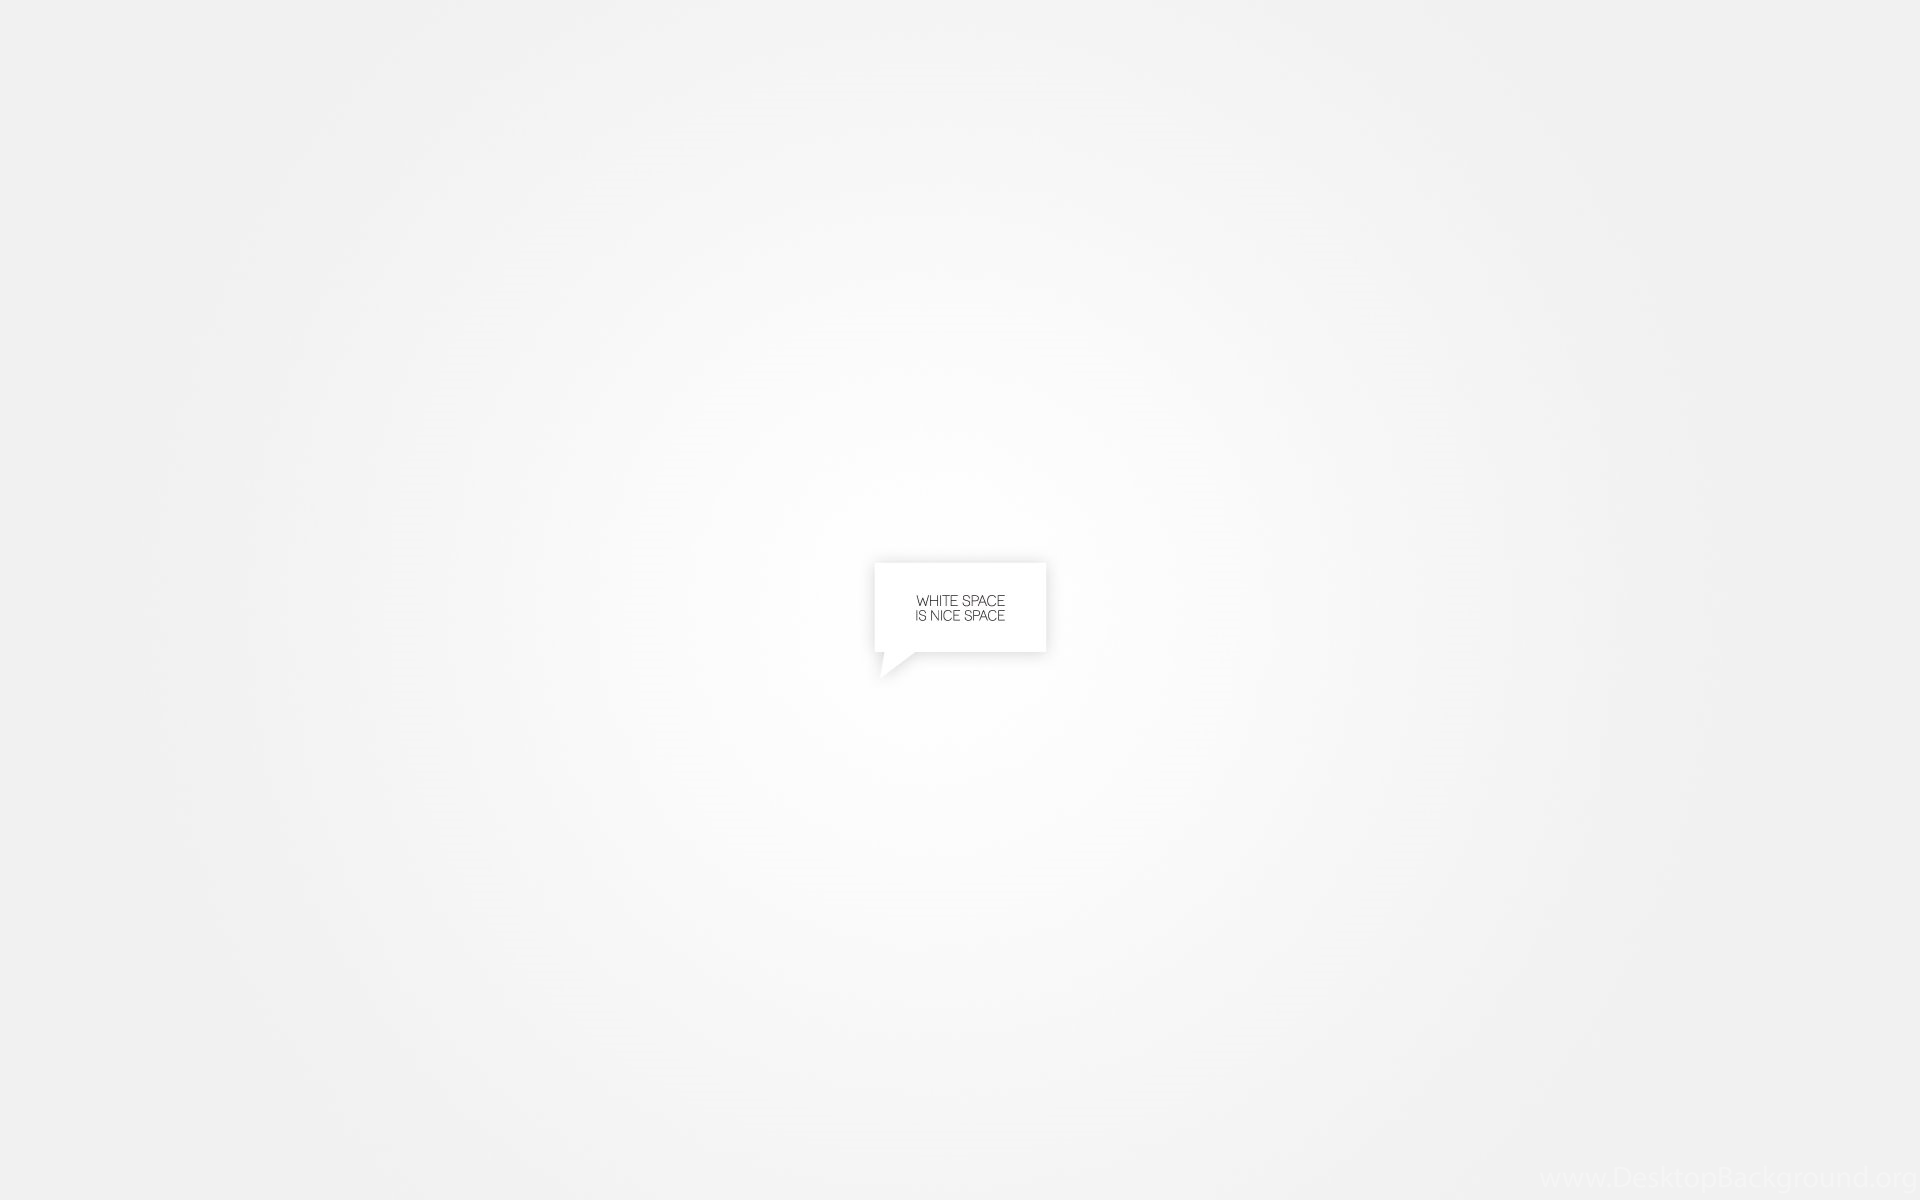 White Space Design Nice Minimalist 1920x1200 Hd Wallpapers And Desktop Background